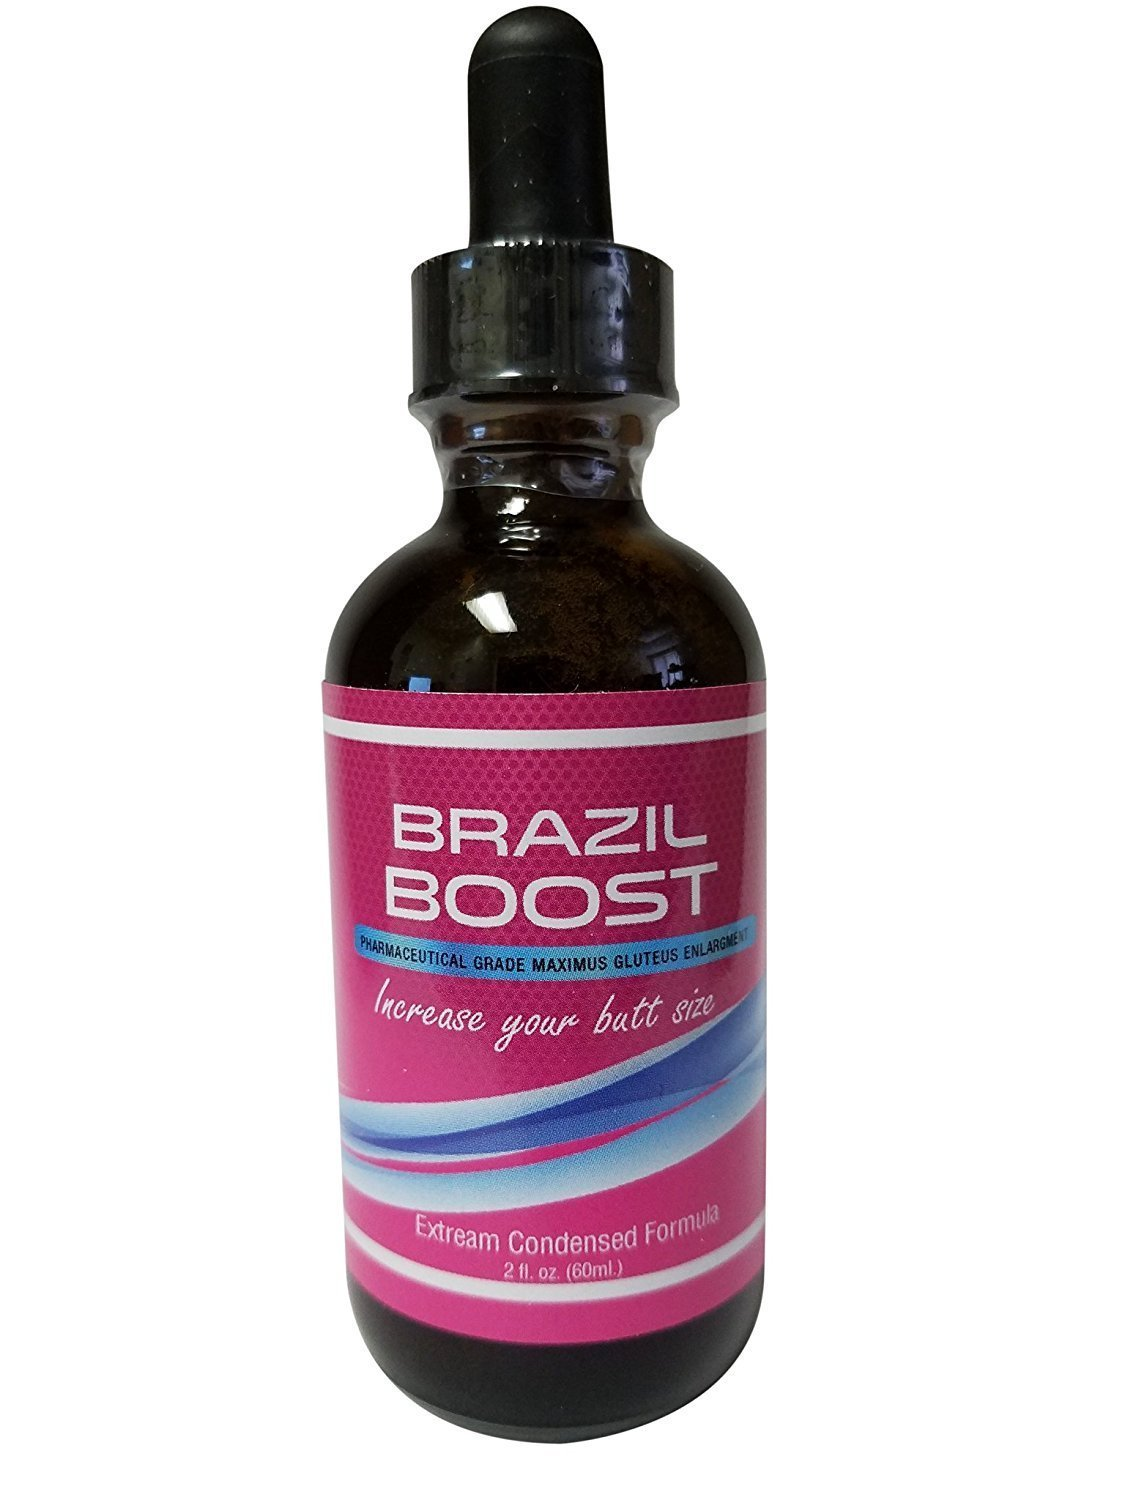 BRAZIL BOOST - 80 % more effective than pills - Pharmaceutical Grade - 30 day Supply - Official Distributor - Max Strength - Butt Enhancement